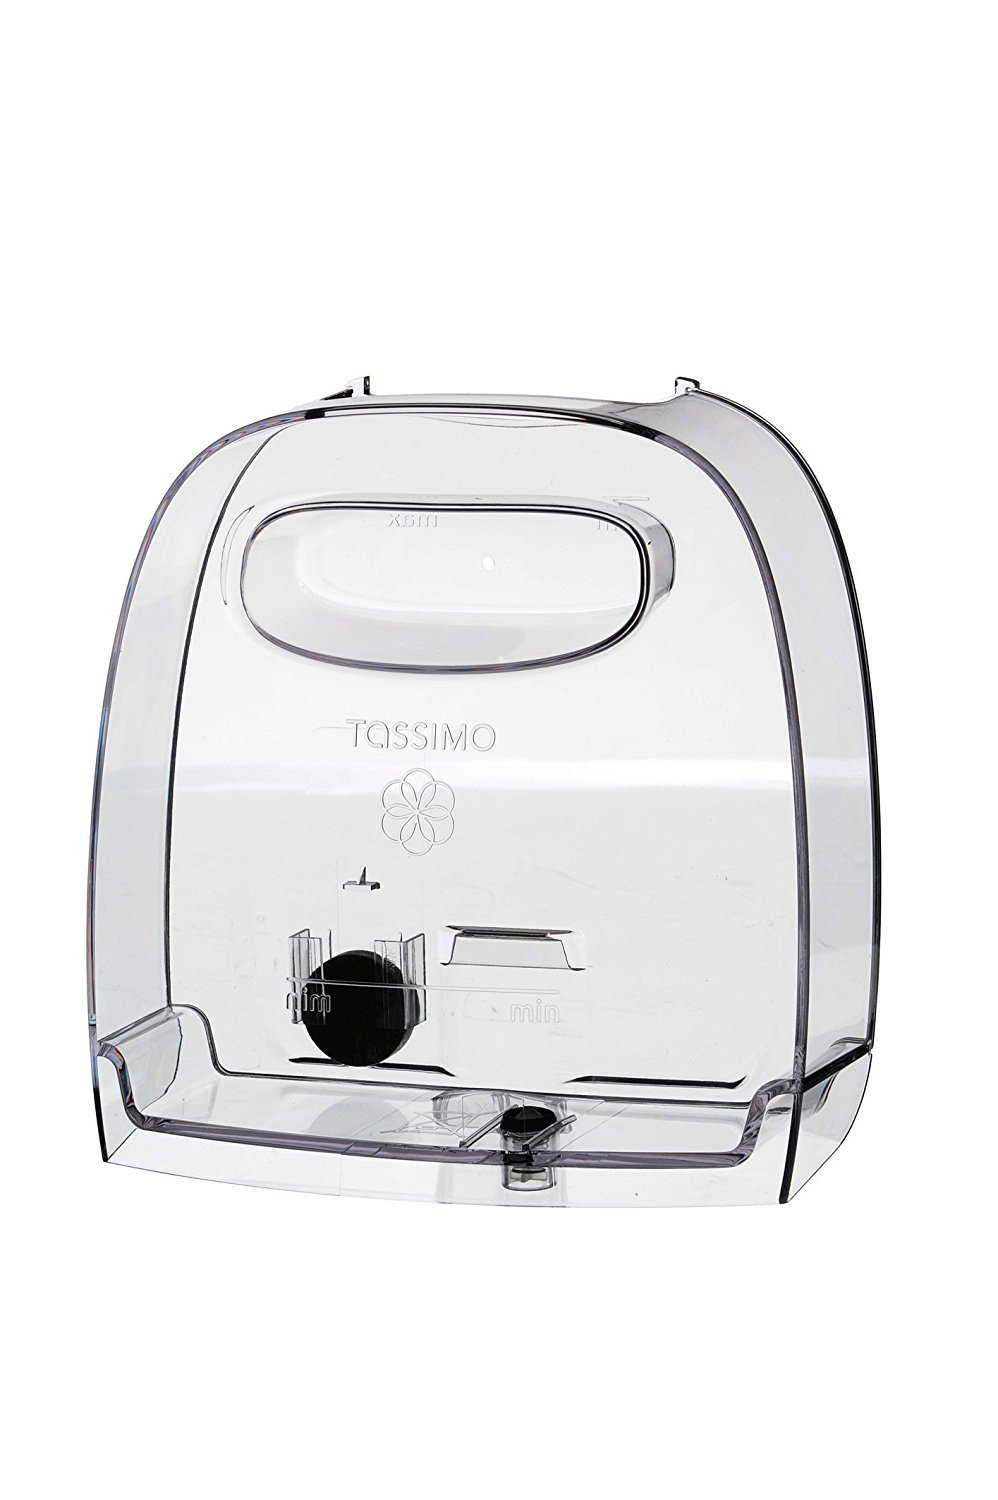 Bosch Tassimo Genuine Water Tank (without a Lid) (To Fit: Tassimo Black TAS2002GB & Tassimo White TAS2001GB Machines) c/w A Packet of Tassimo Cappuccino Coffee T-Discs + Cadbury Chocolate Bar Bosch Appliances